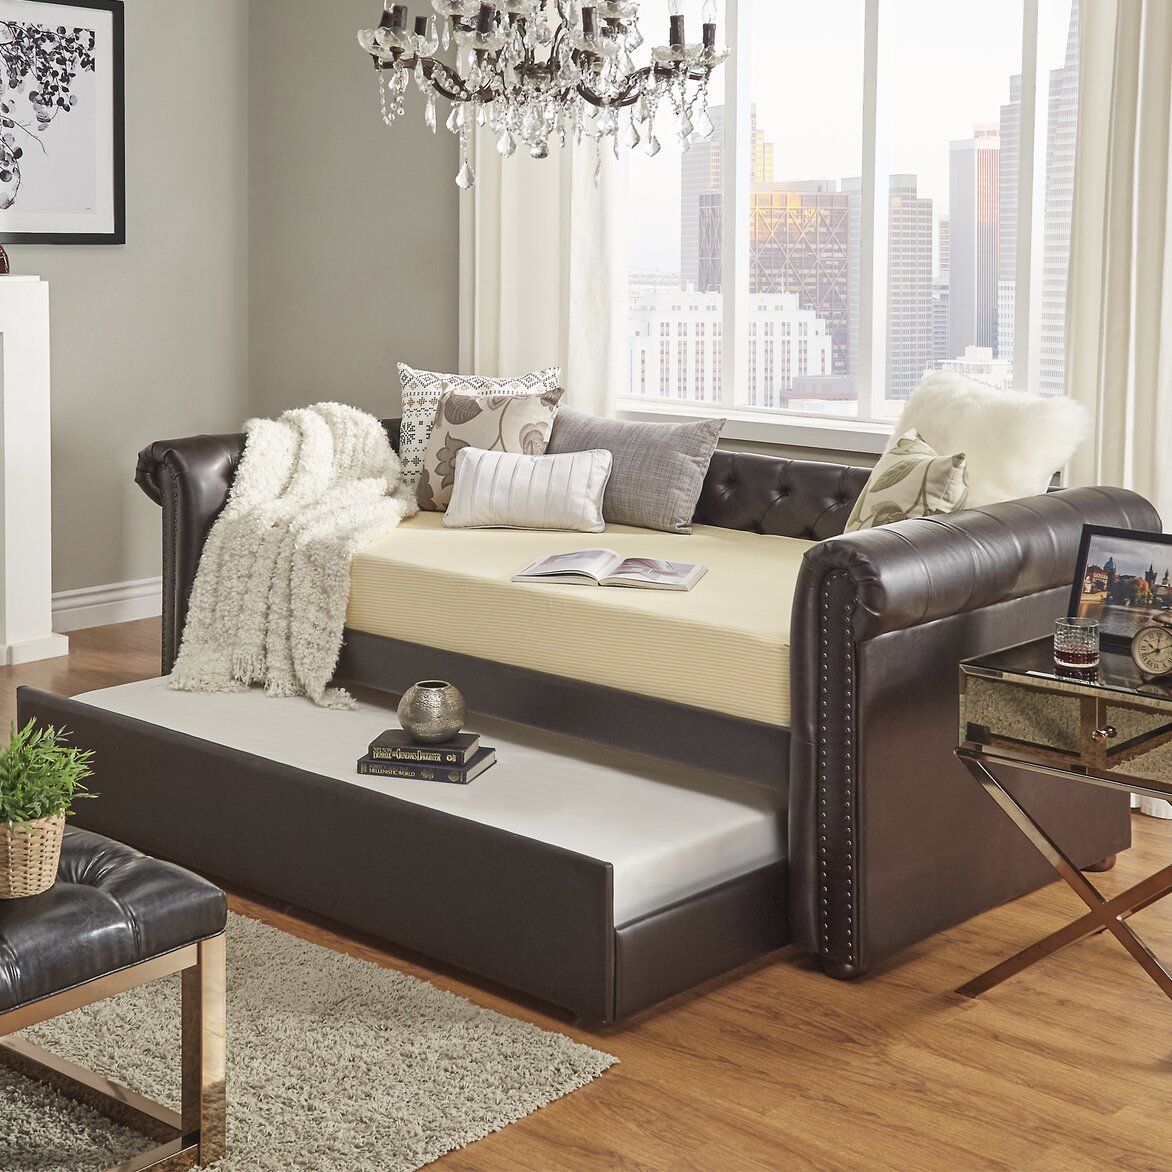 Day beds with pop up trundle - Kaminsky Daybed With Trundle